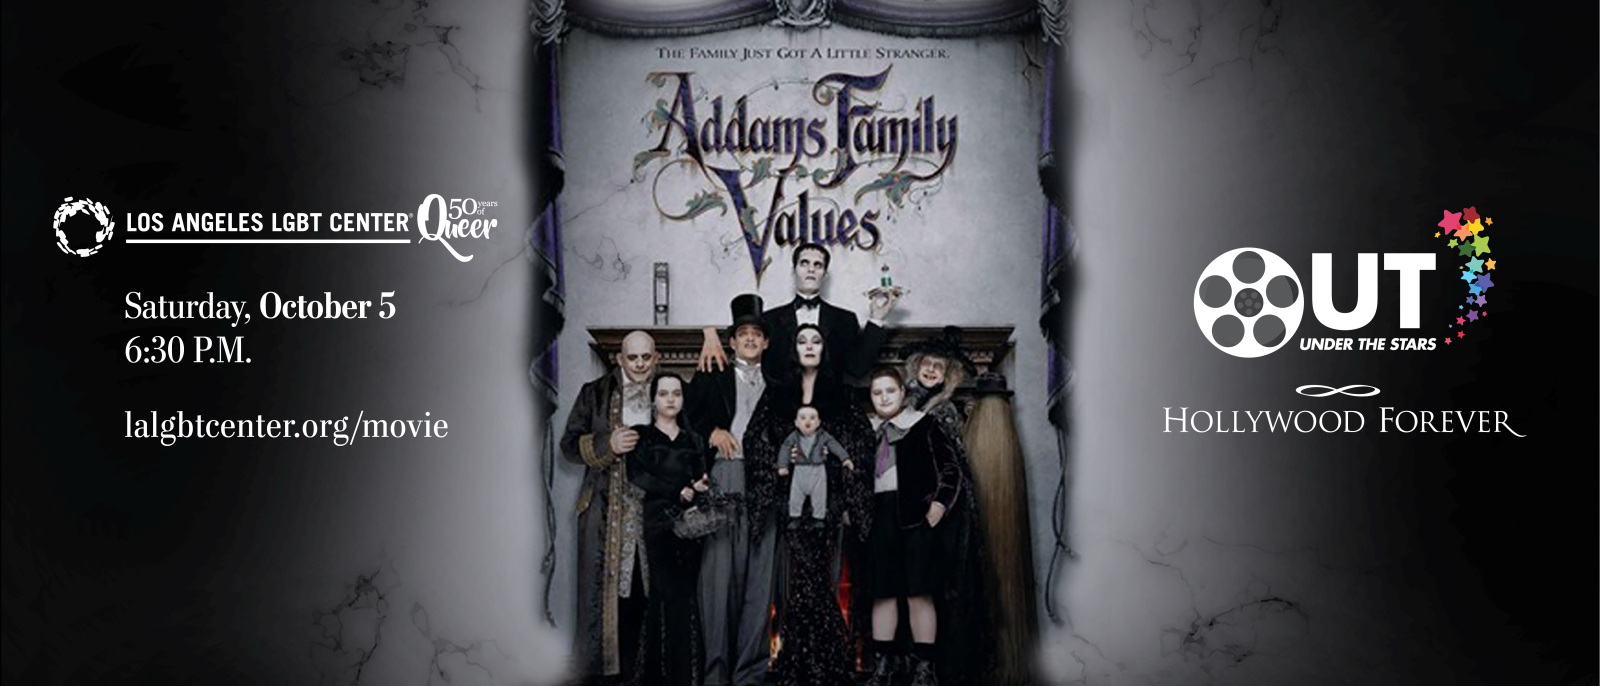 """Los Angeles LGBT Center """"Addams Family Values"""" at Hollywood Forever"""